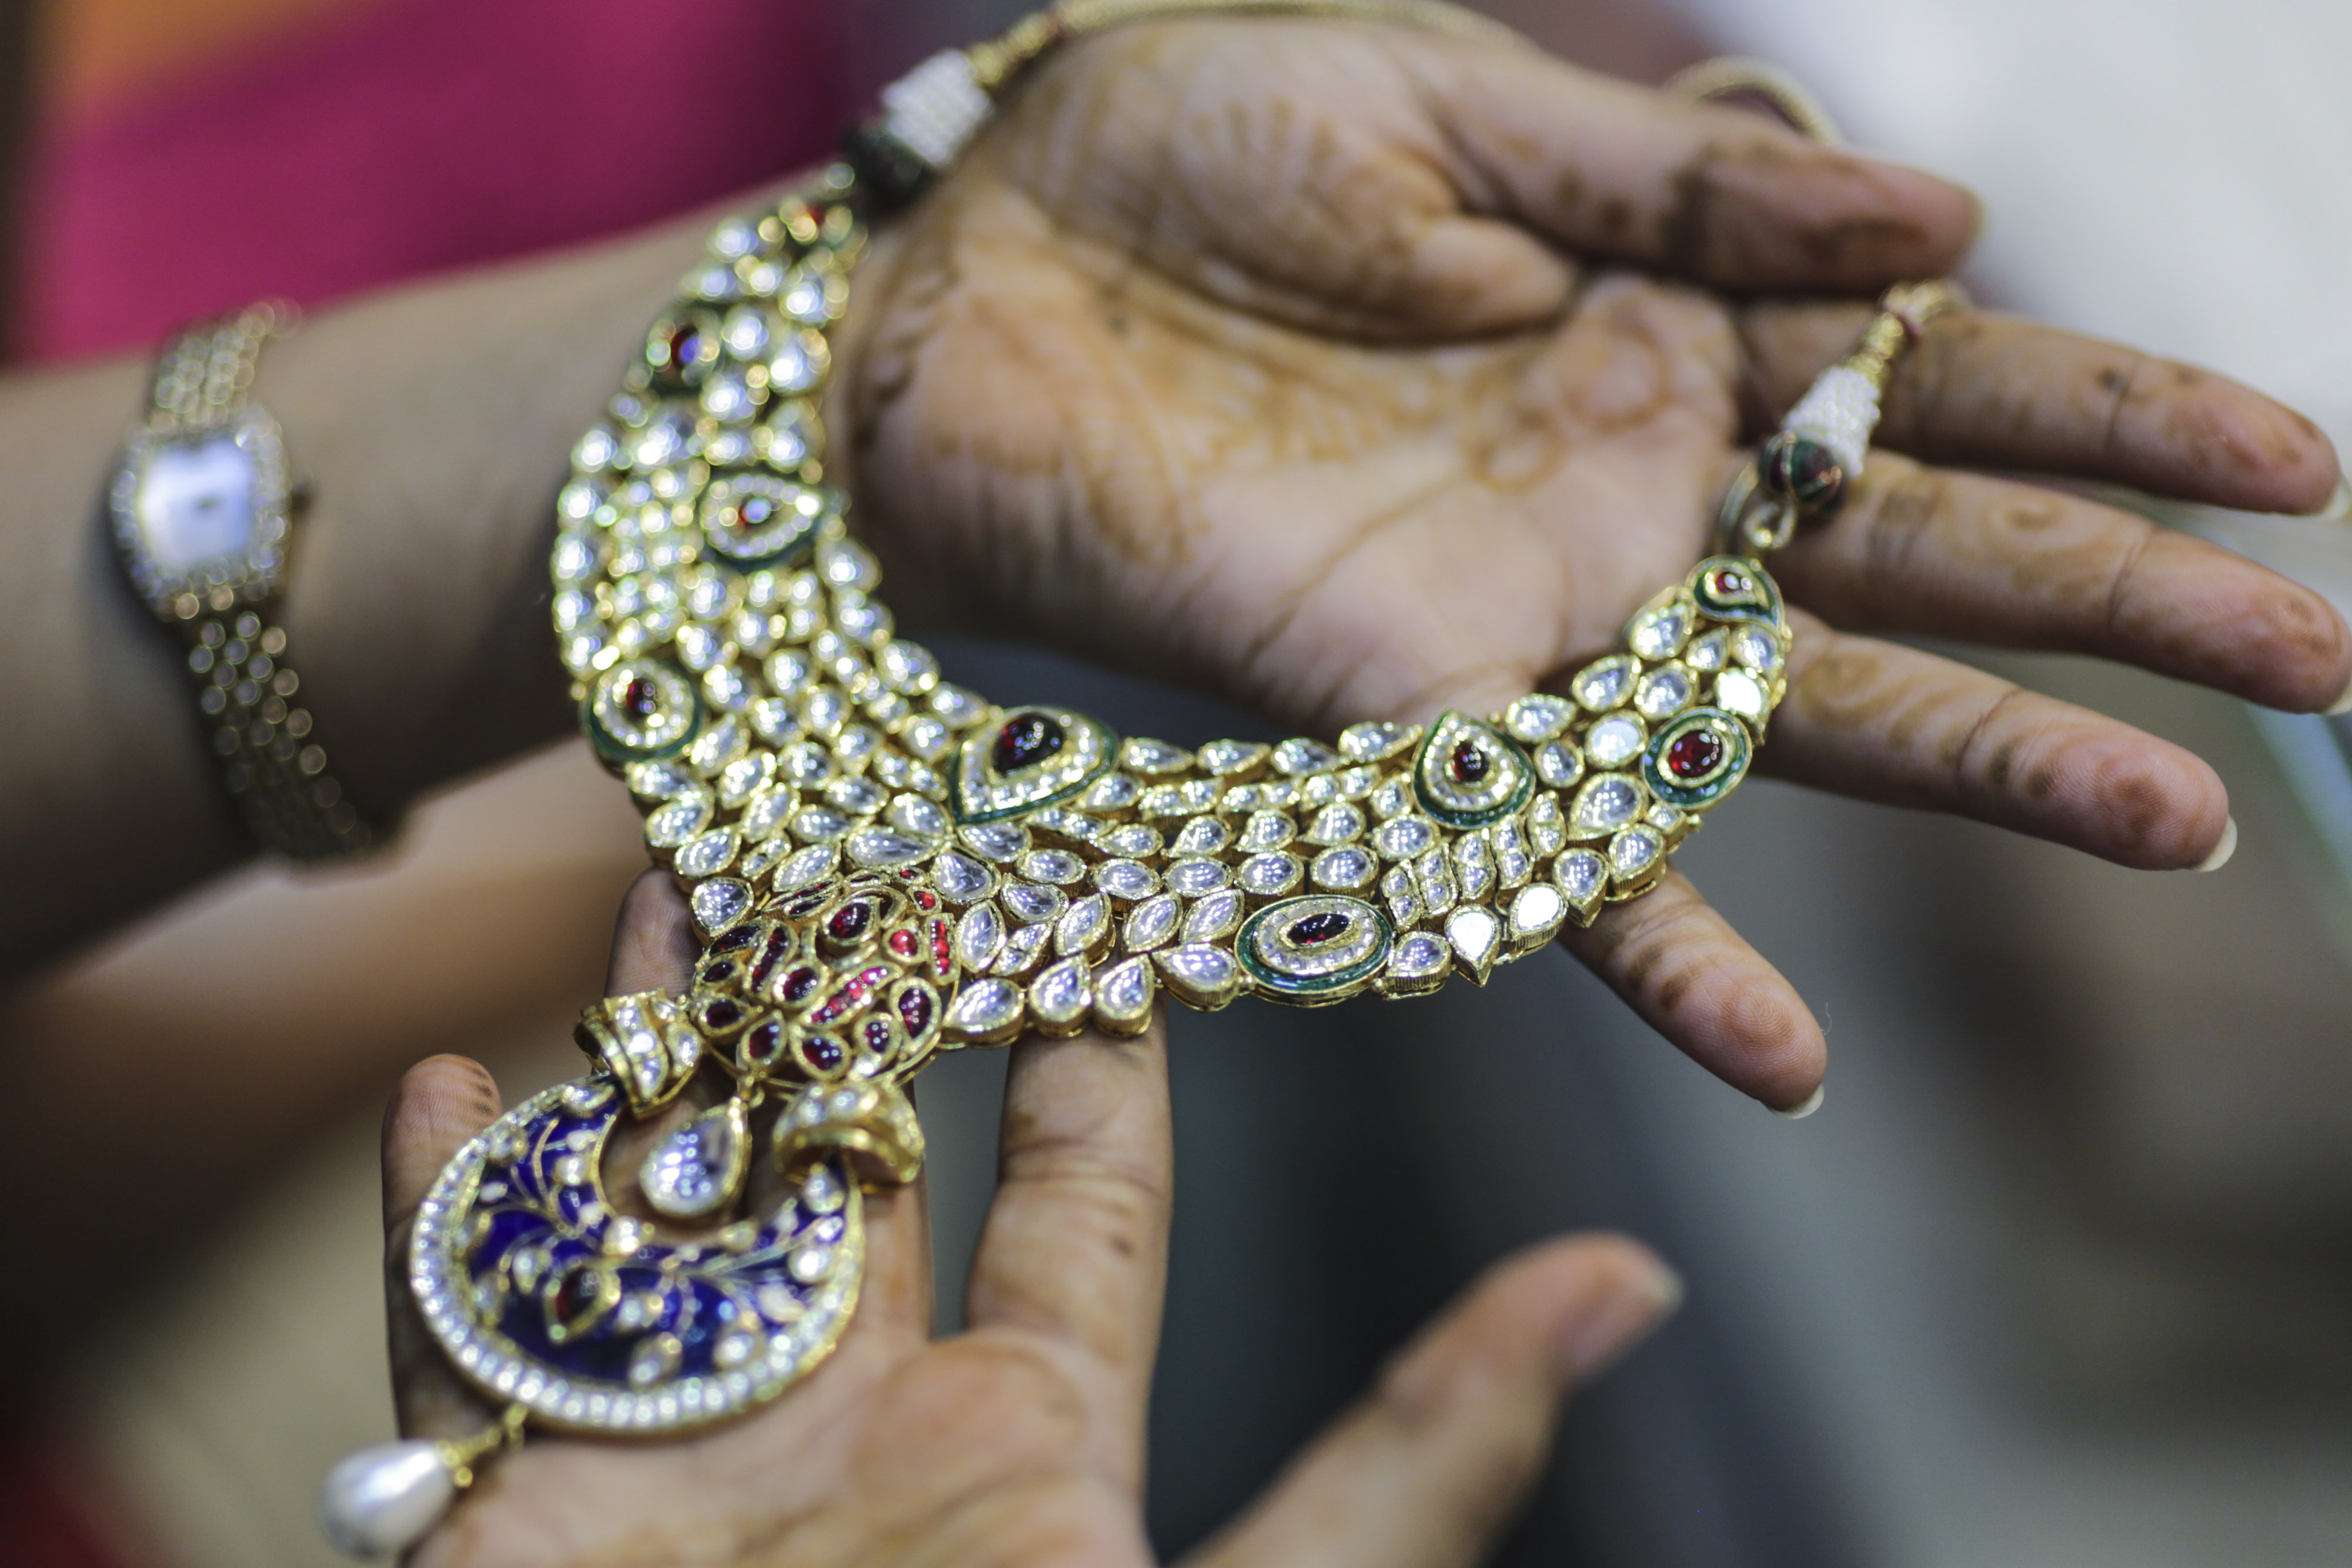 Retail And Celebrations On Dhanteras, The First Day Of Diwali Festival, As Indians Become The World's Most Confident Consumers